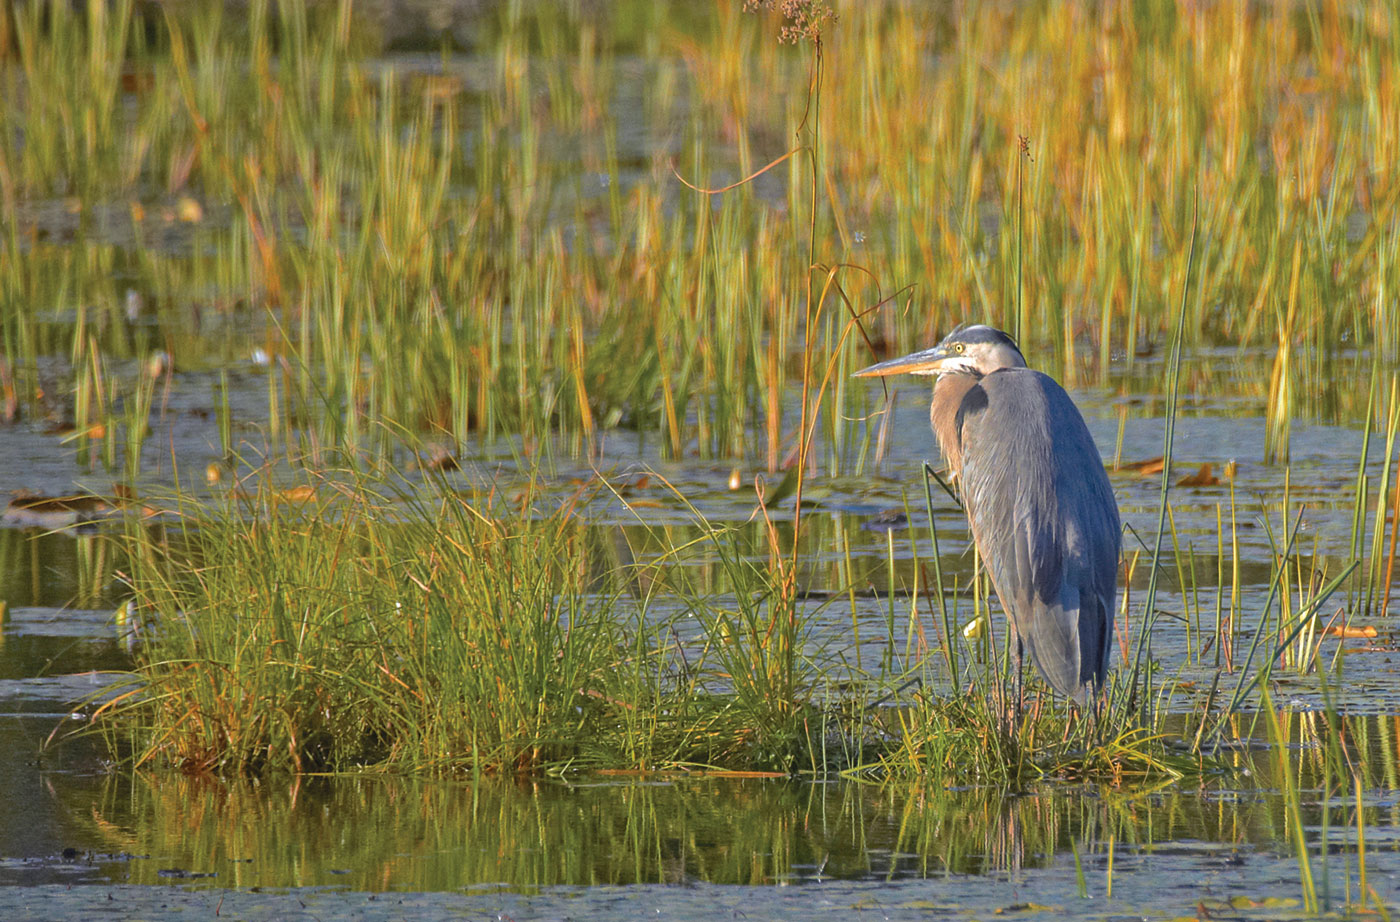 Heron in Penobscot River marshlands